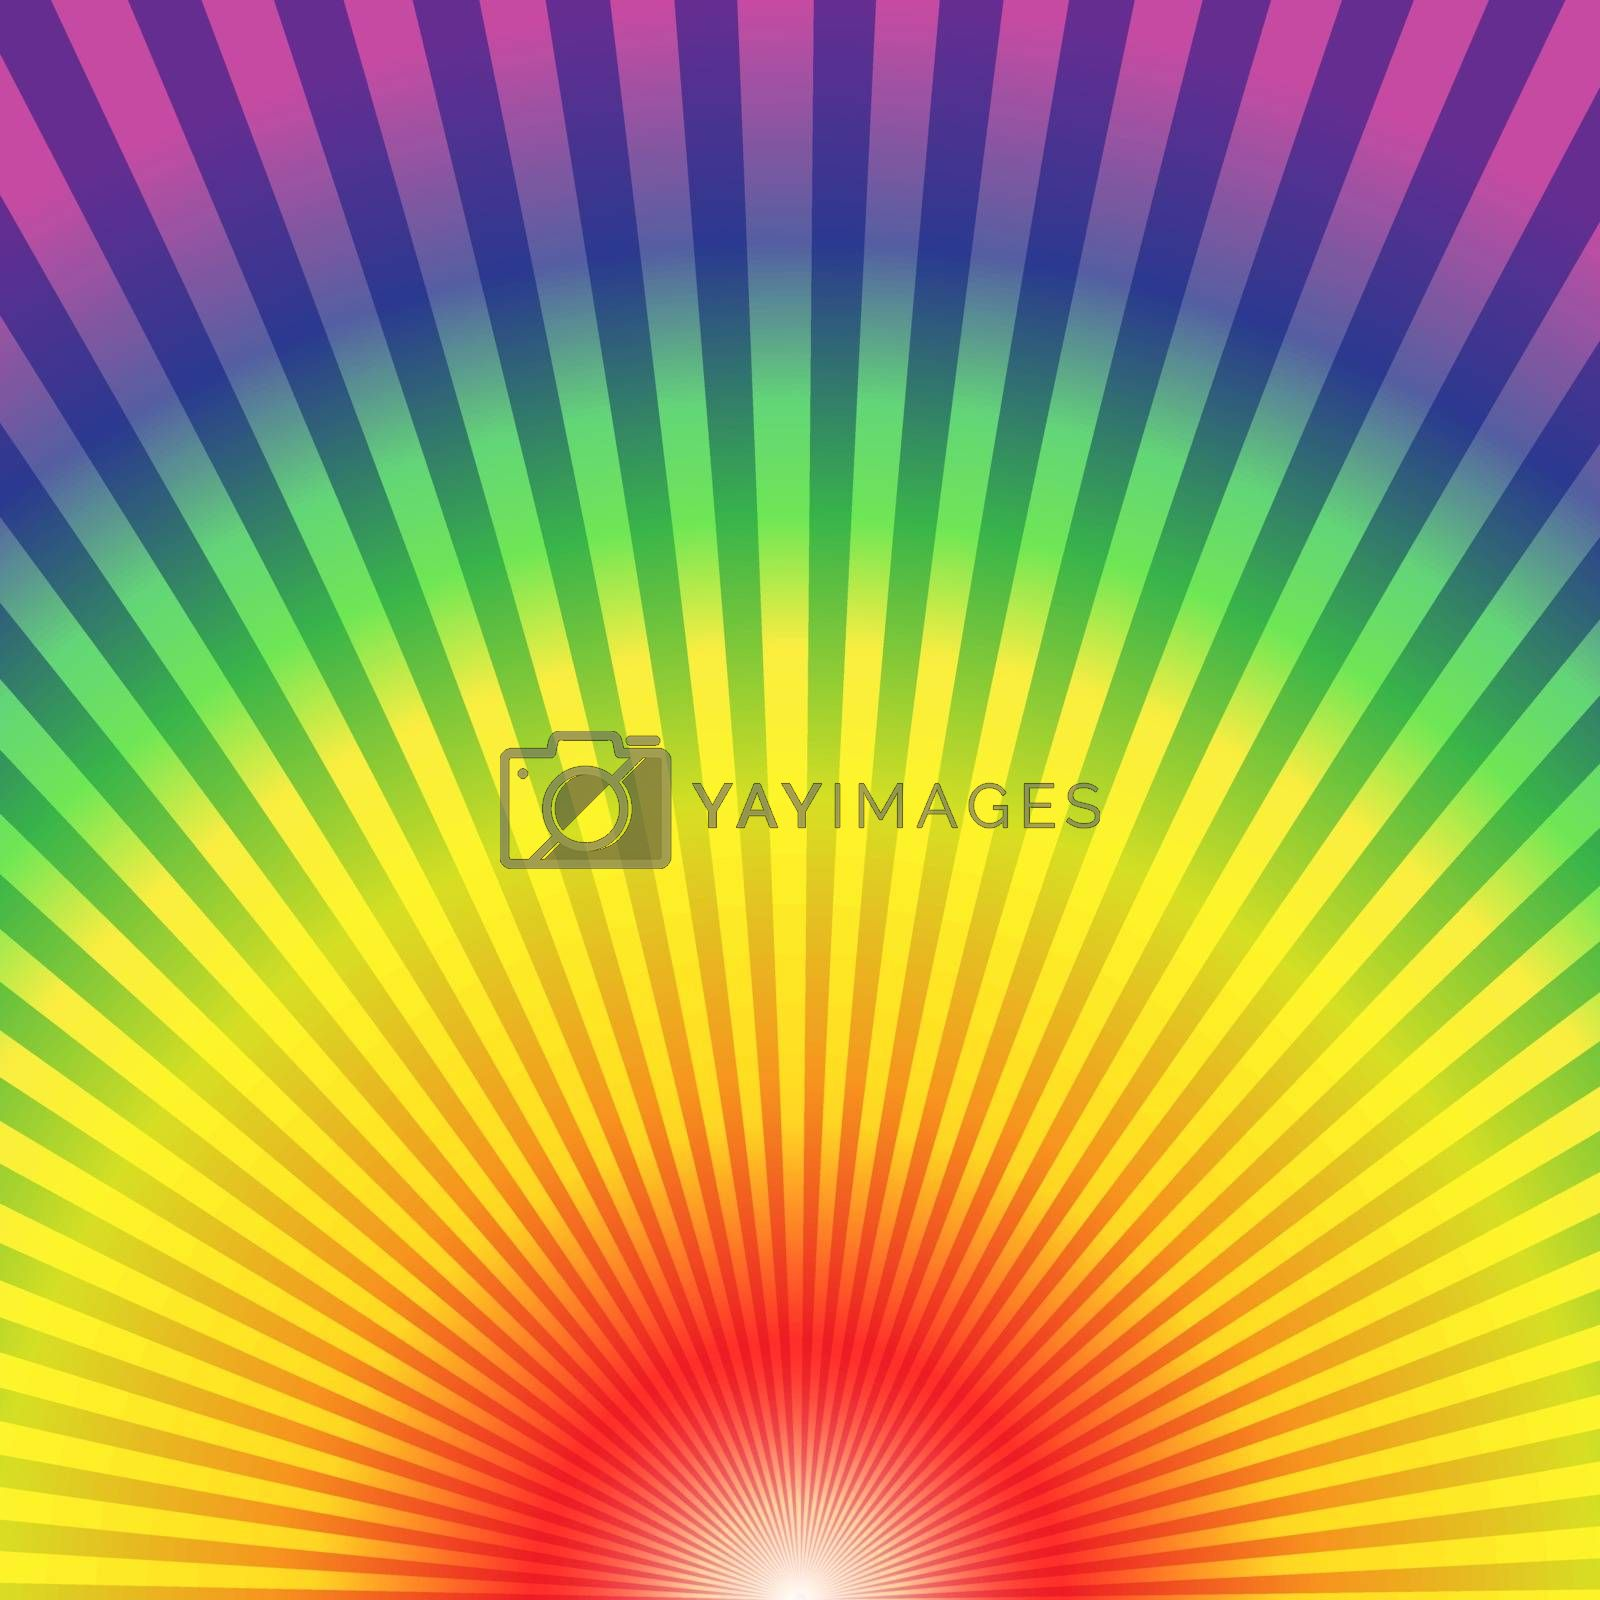 Rainbow radial rays bottom up abstract background, vector illustration